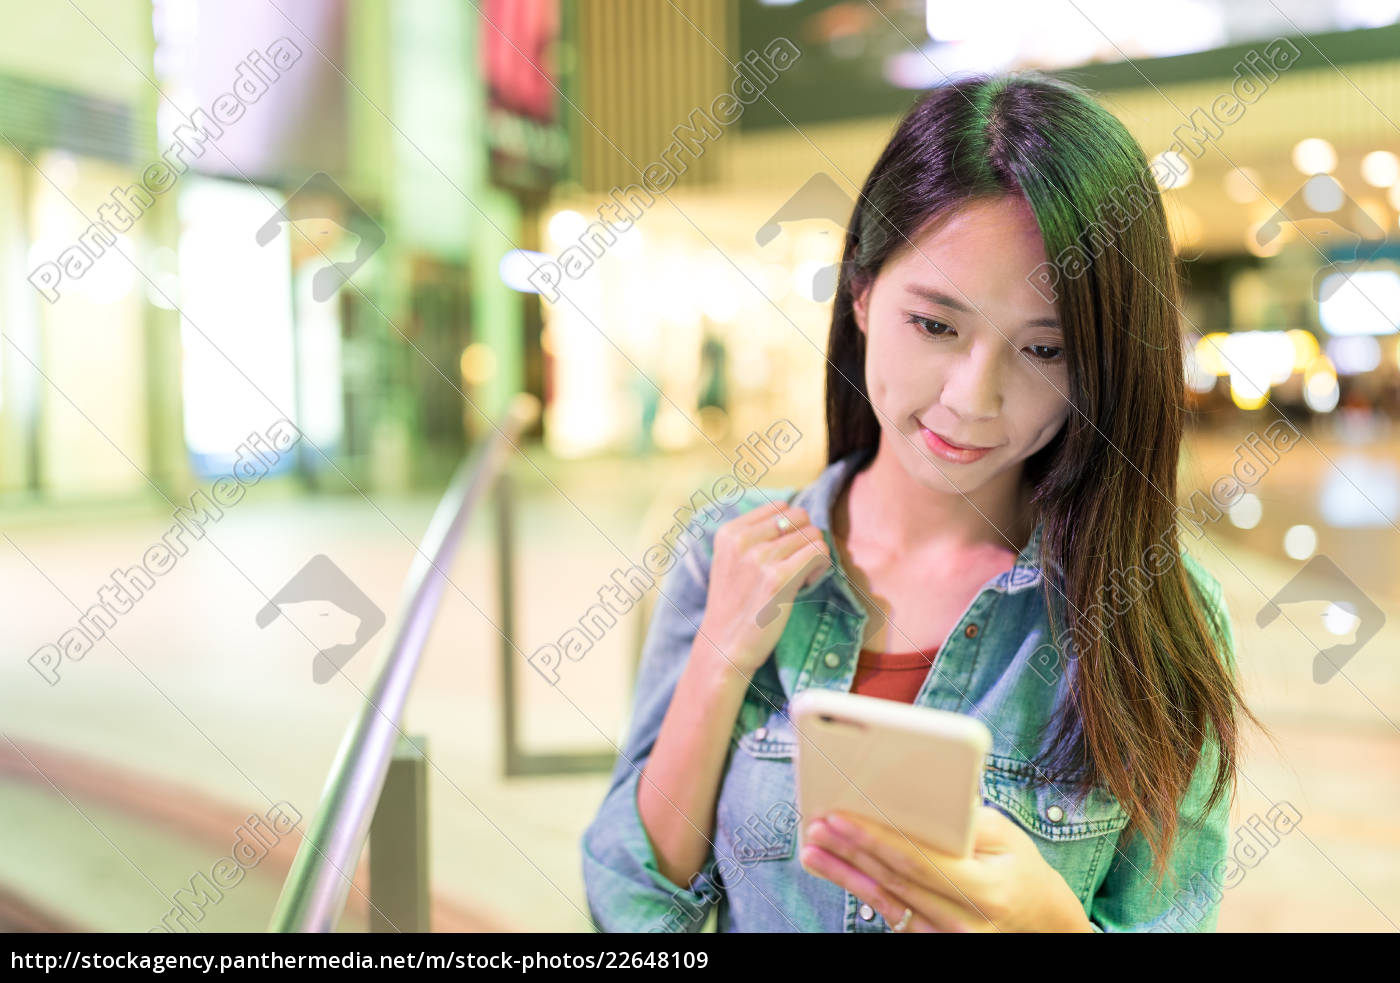 young, woman, use, of, mobile, phone - 22648109